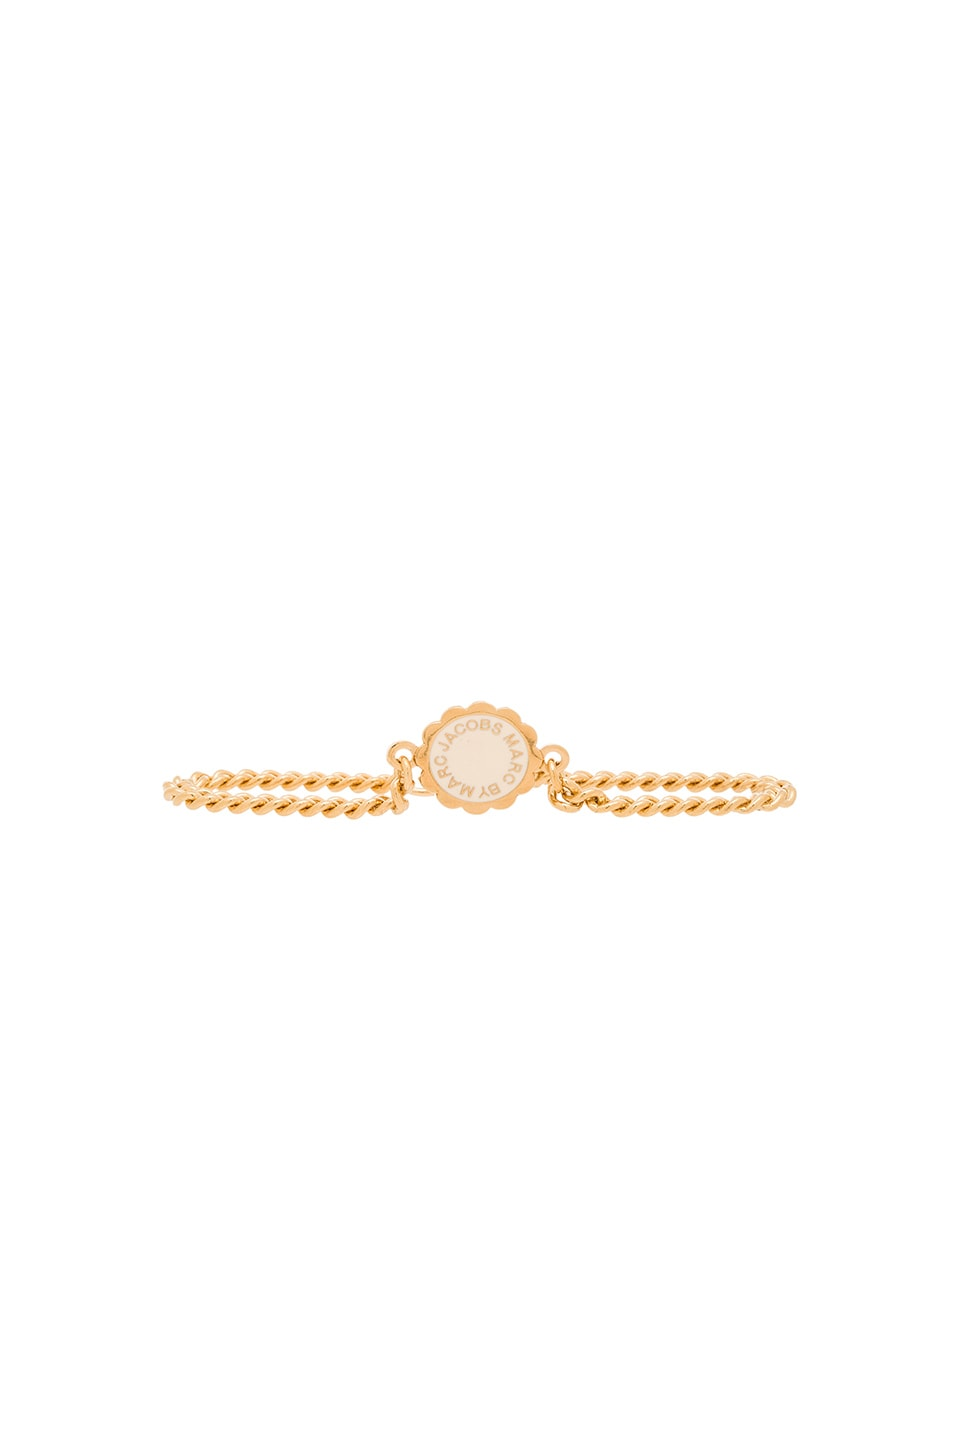 Marc by Marc Jacobs Scalloped Disc-O Bracelet in Cream